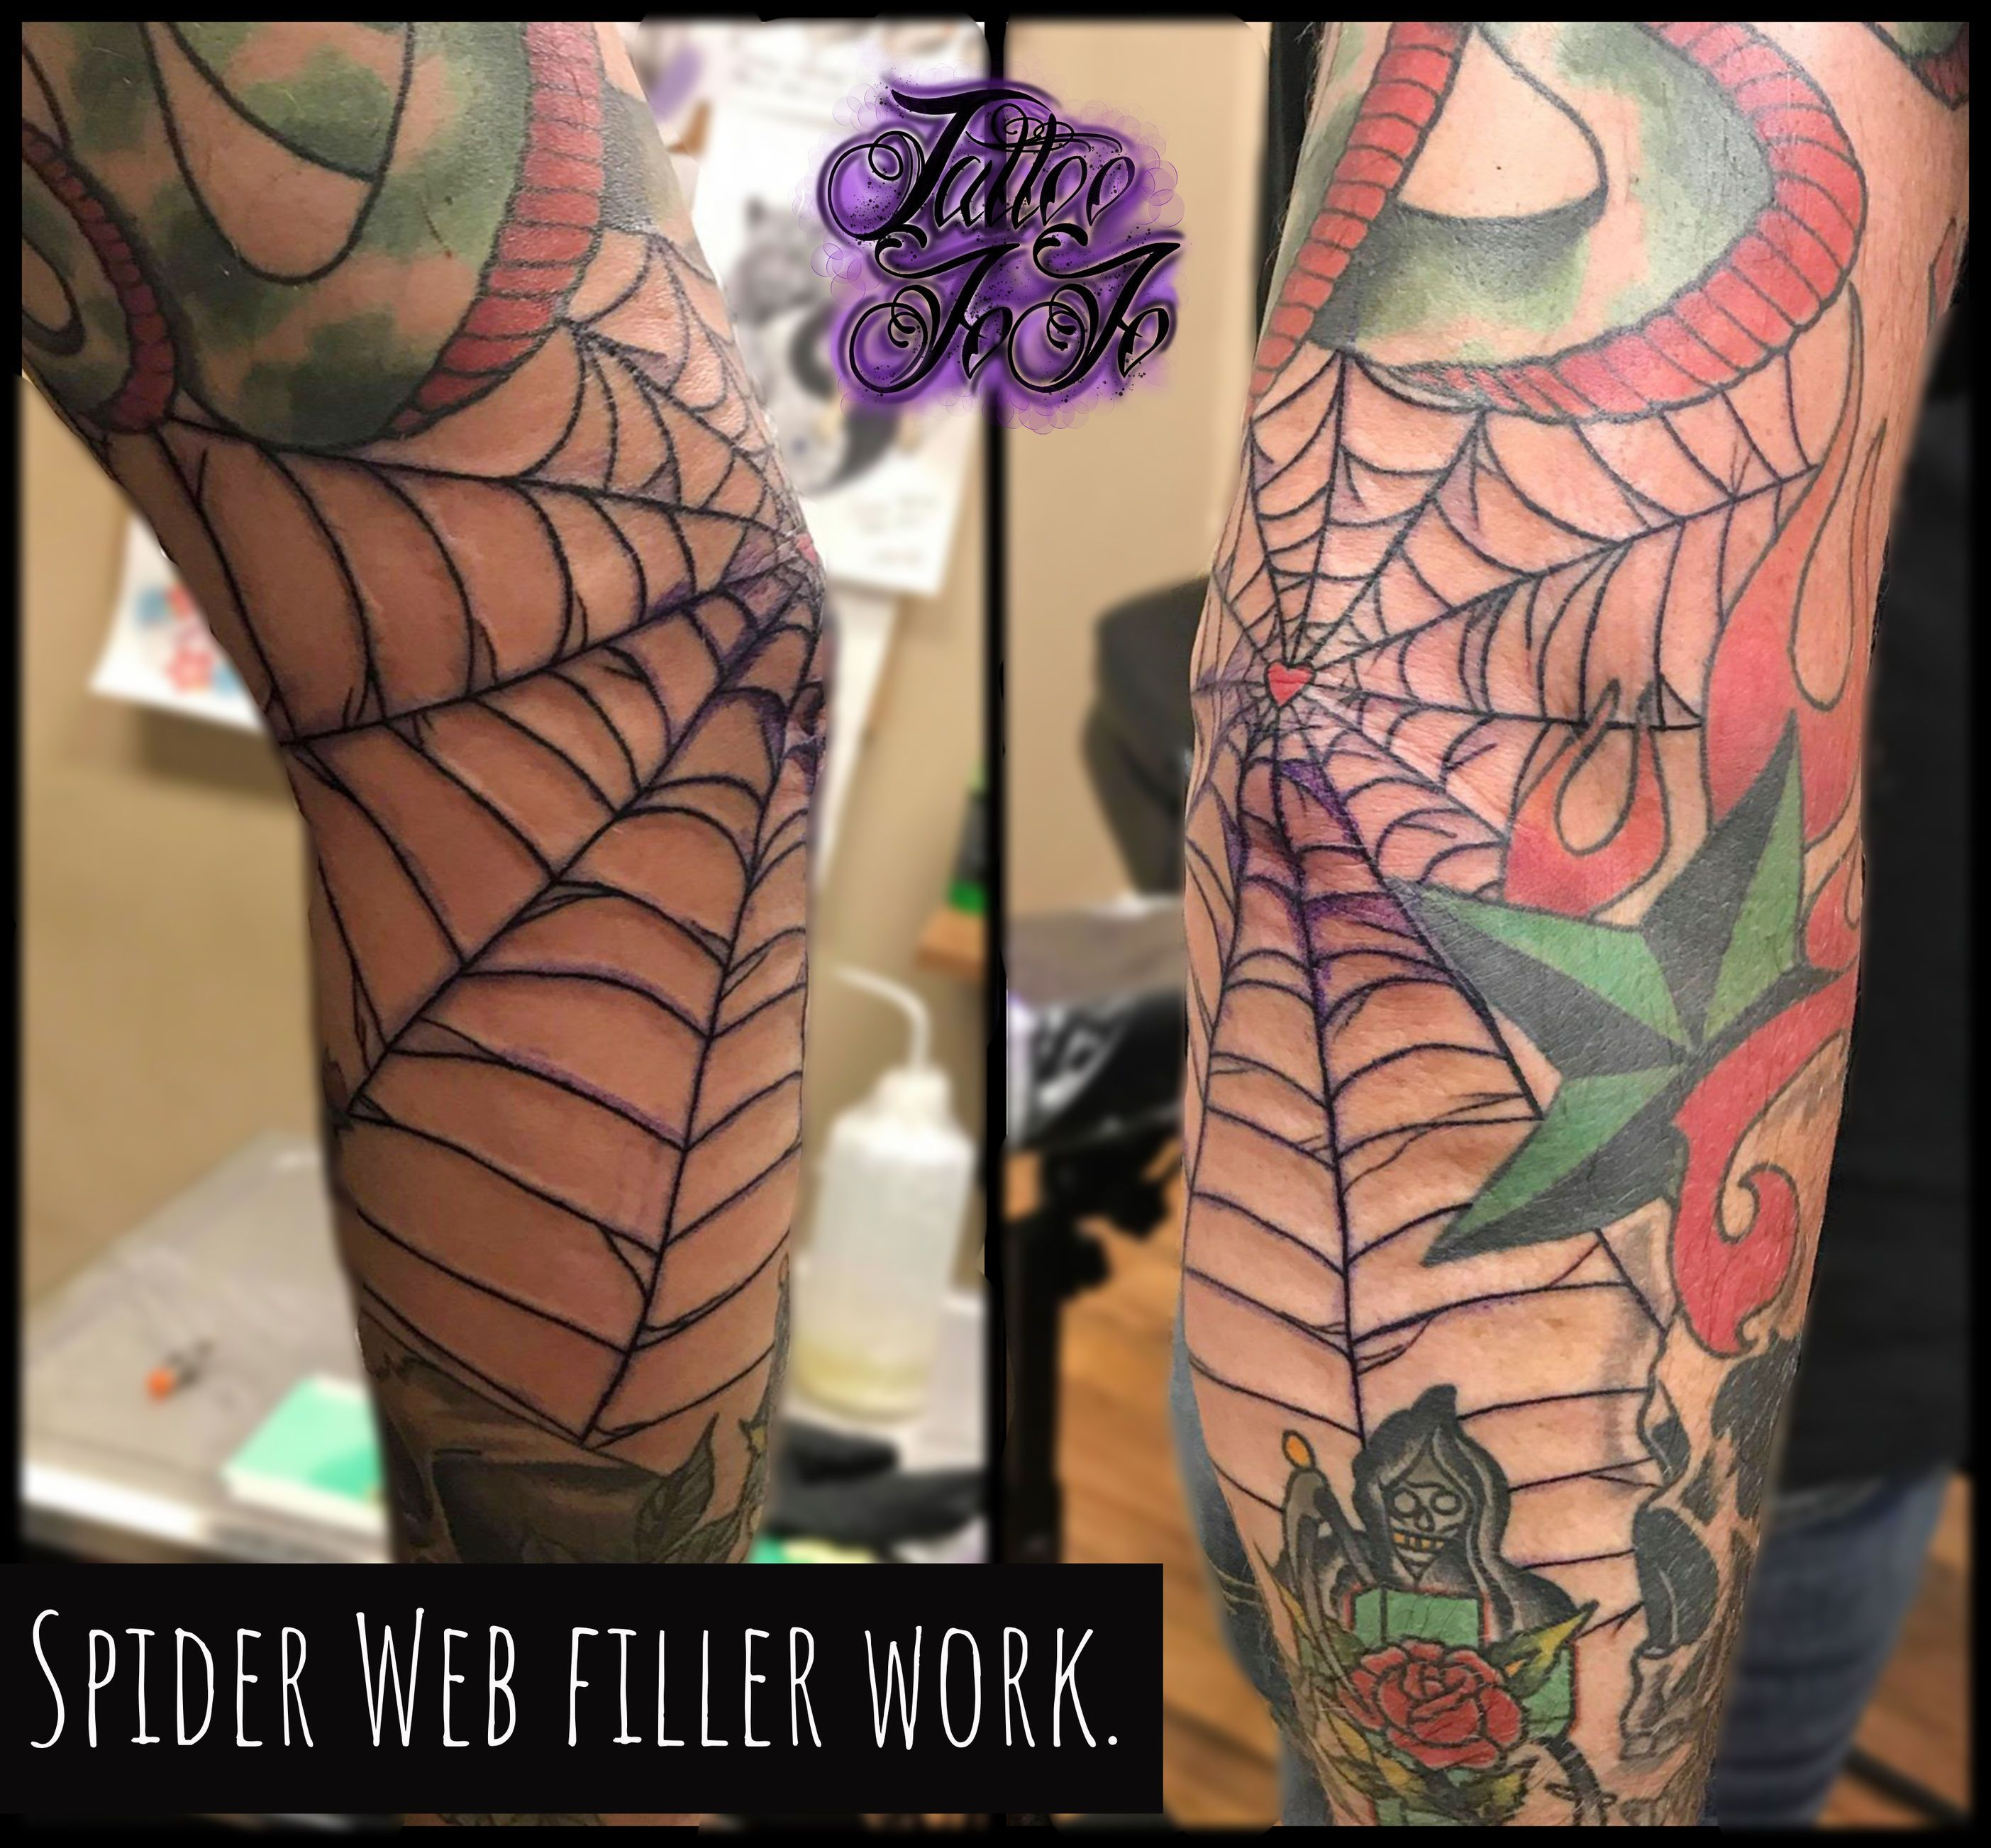 Some Spider Web Filler Work Right On That Elbow Tattoo Artist Jojo Book Consultation 219 286 3257 Tattoo Studio Ameri Tattoos Tattoo Work Tattoo Artists